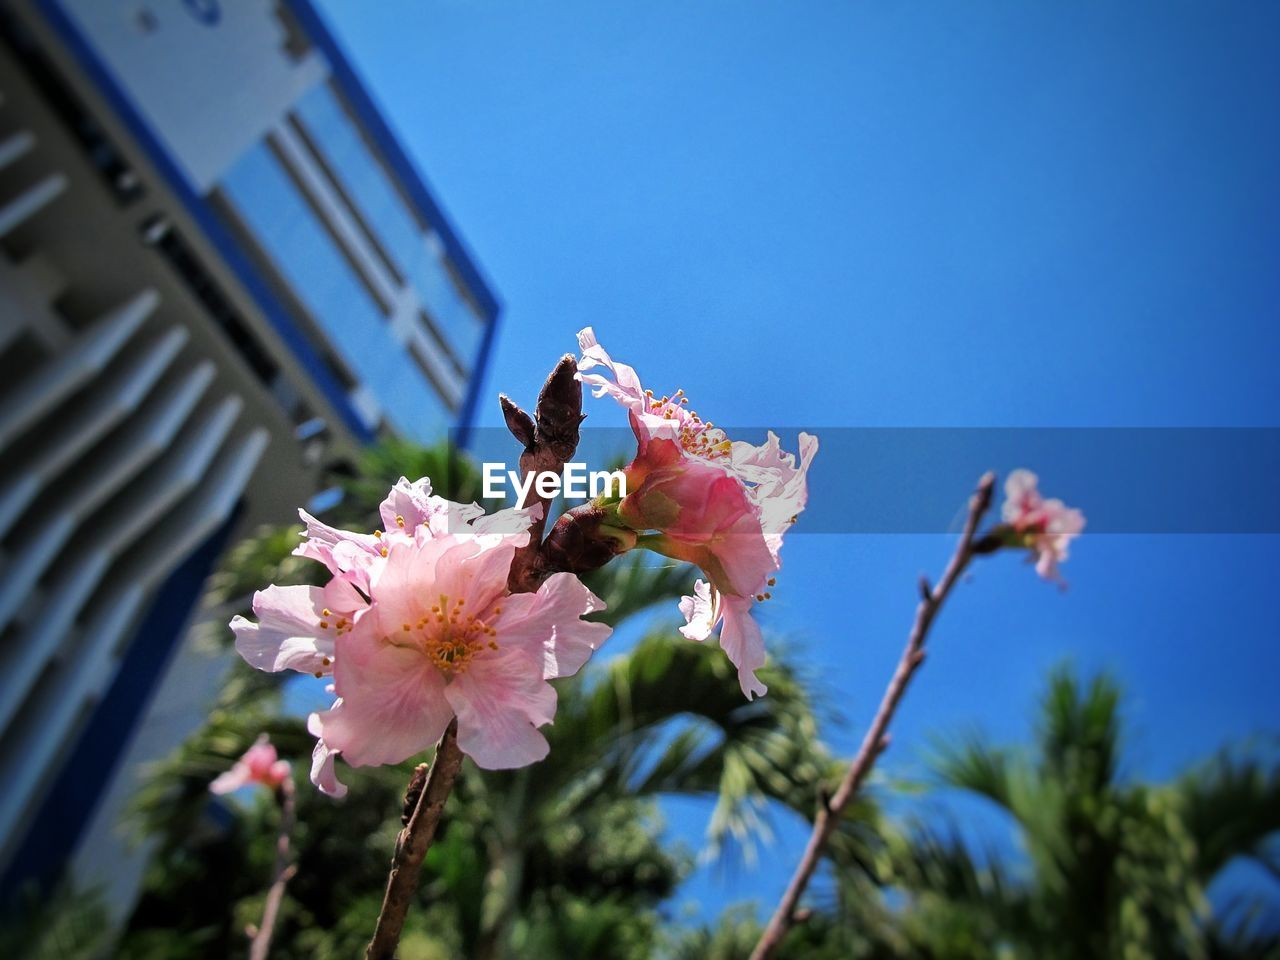 flower, fragility, growth, freshness, beauty in nature, nature, no people, petal, low angle view, day, animals in the wild, clear sky, outdoors, pink color, animal themes, one animal, flower head, building exterior, insect, architecture, blooming, plant, tree, bee, close-up, buzzing, sky